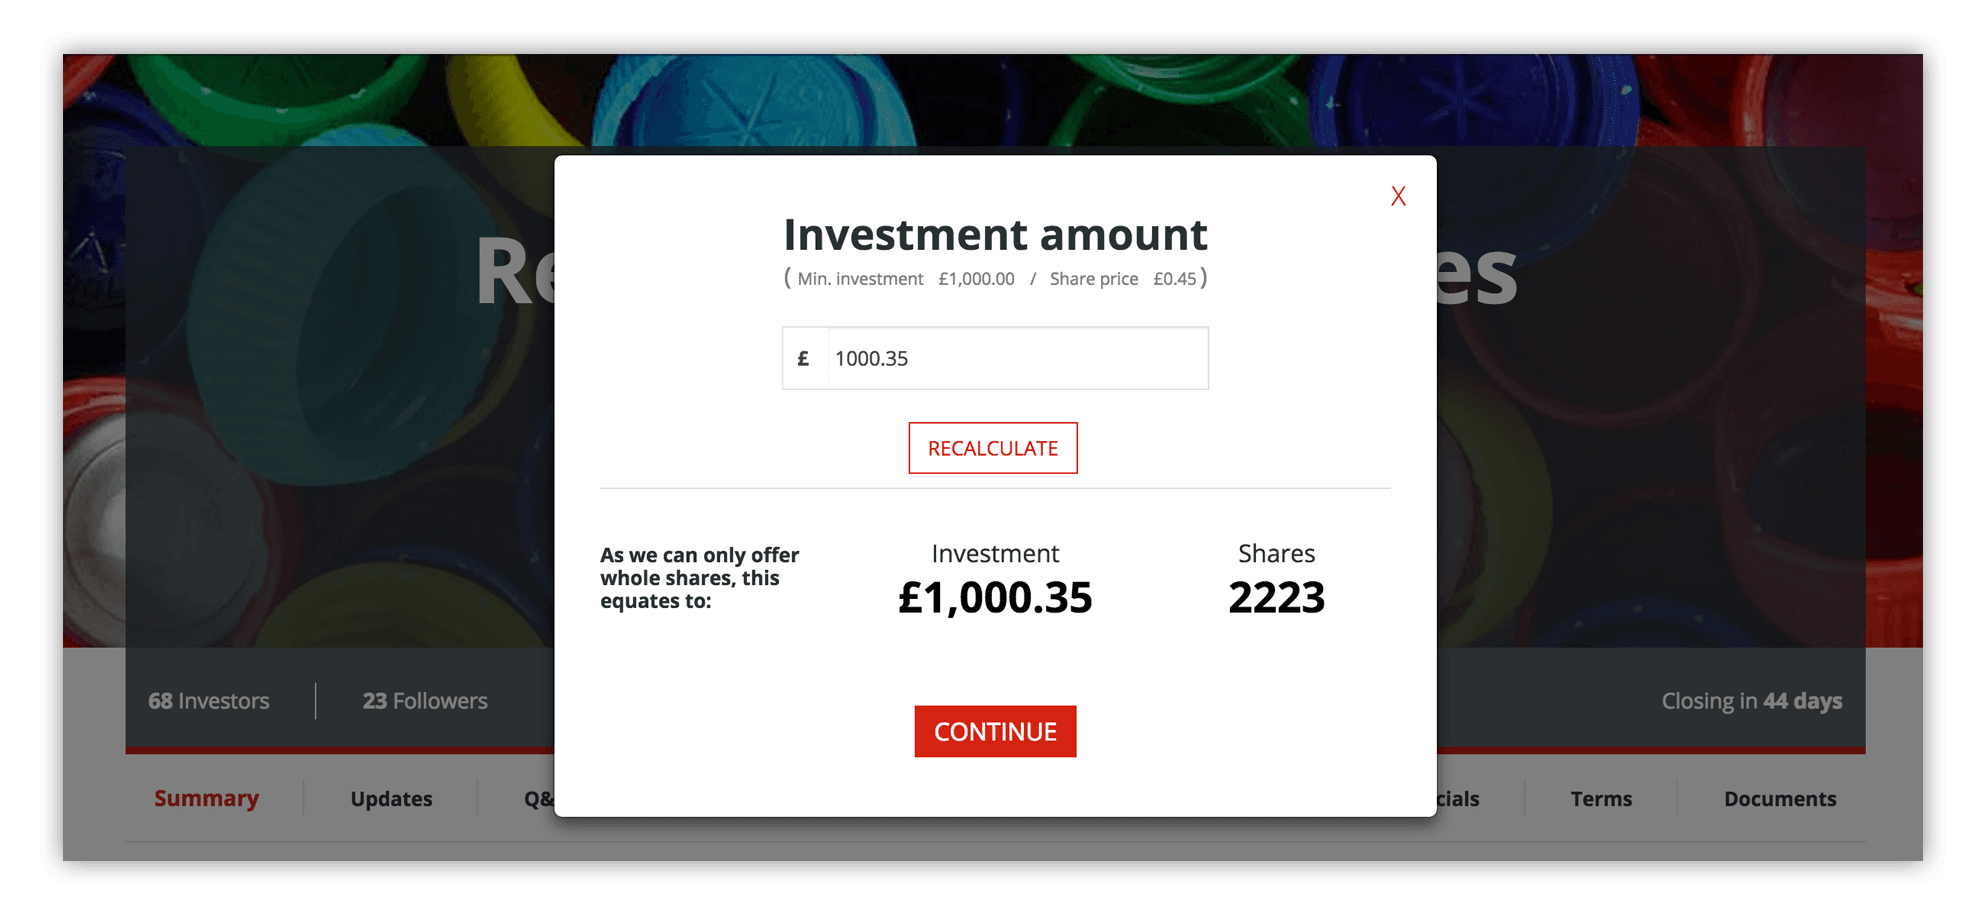 How to invest - step 1